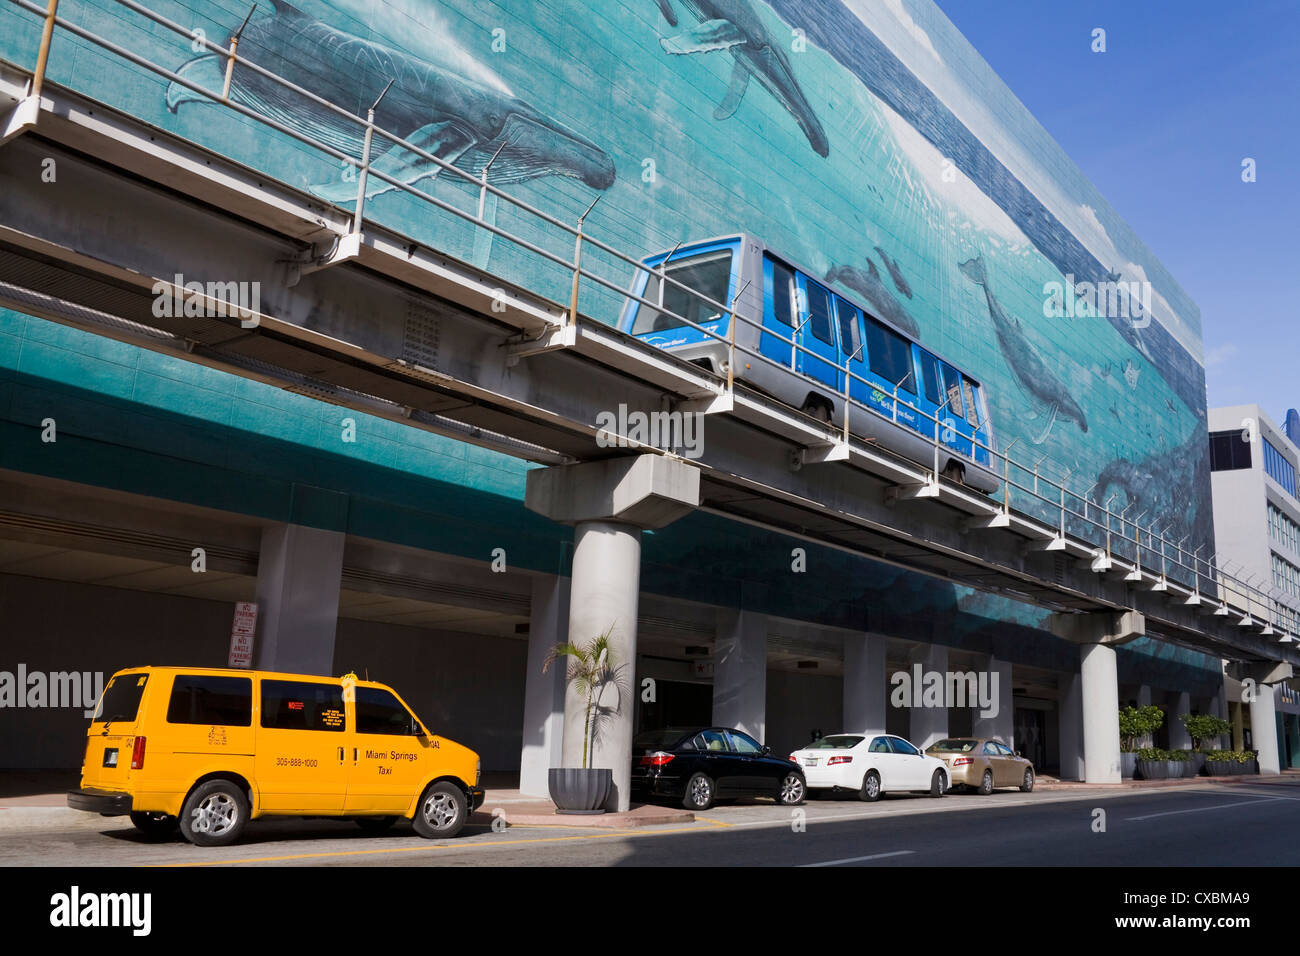 Metromover and mural by Wyland on SE 1st Street, Miami, Florida, United States of America, North America - Stock Image